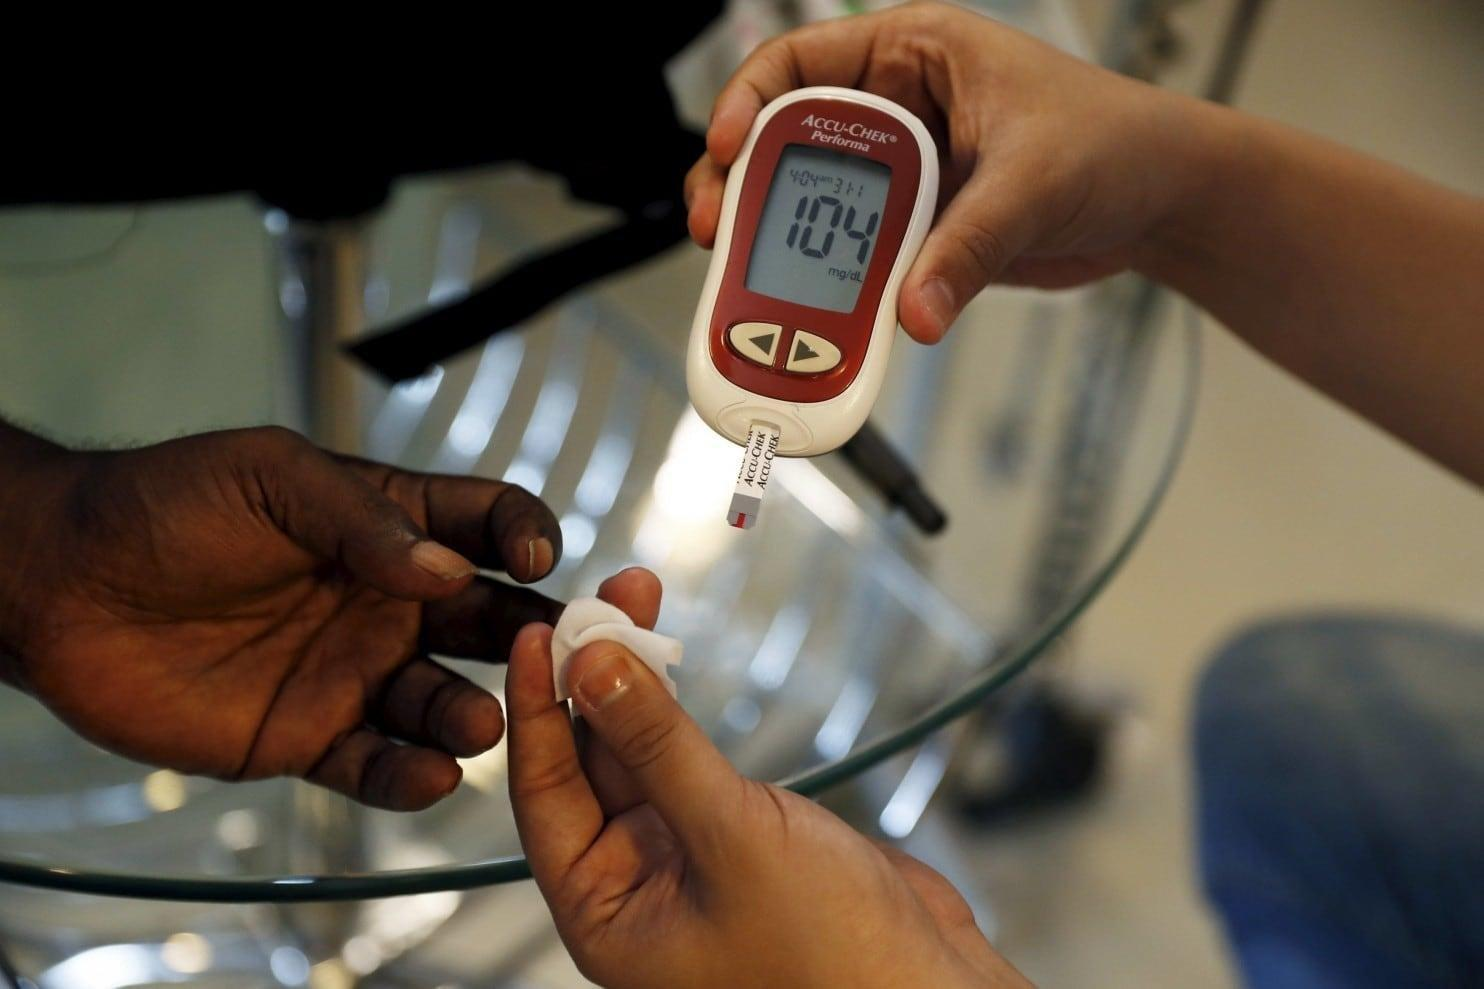 Diabetes is even deadlier than we thought, study suggests